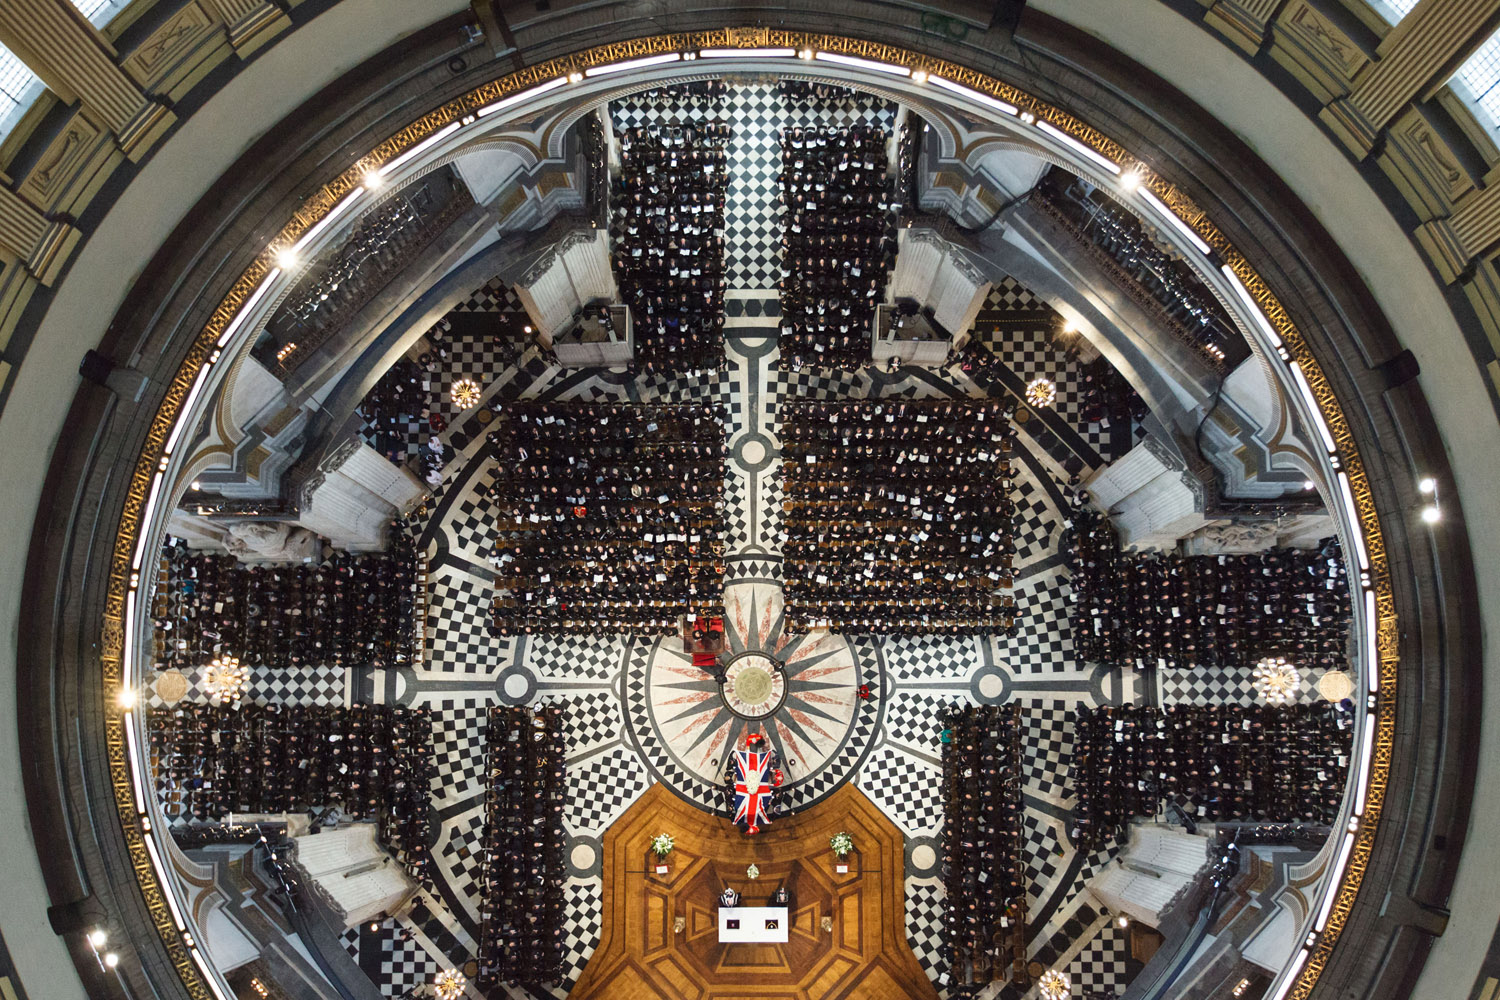 April 17, 2013. Guests take their seats during the Ceremonial funeral of former British Prime Minister Baroness Thatcher at St Paul's Cathedral  in London, England.